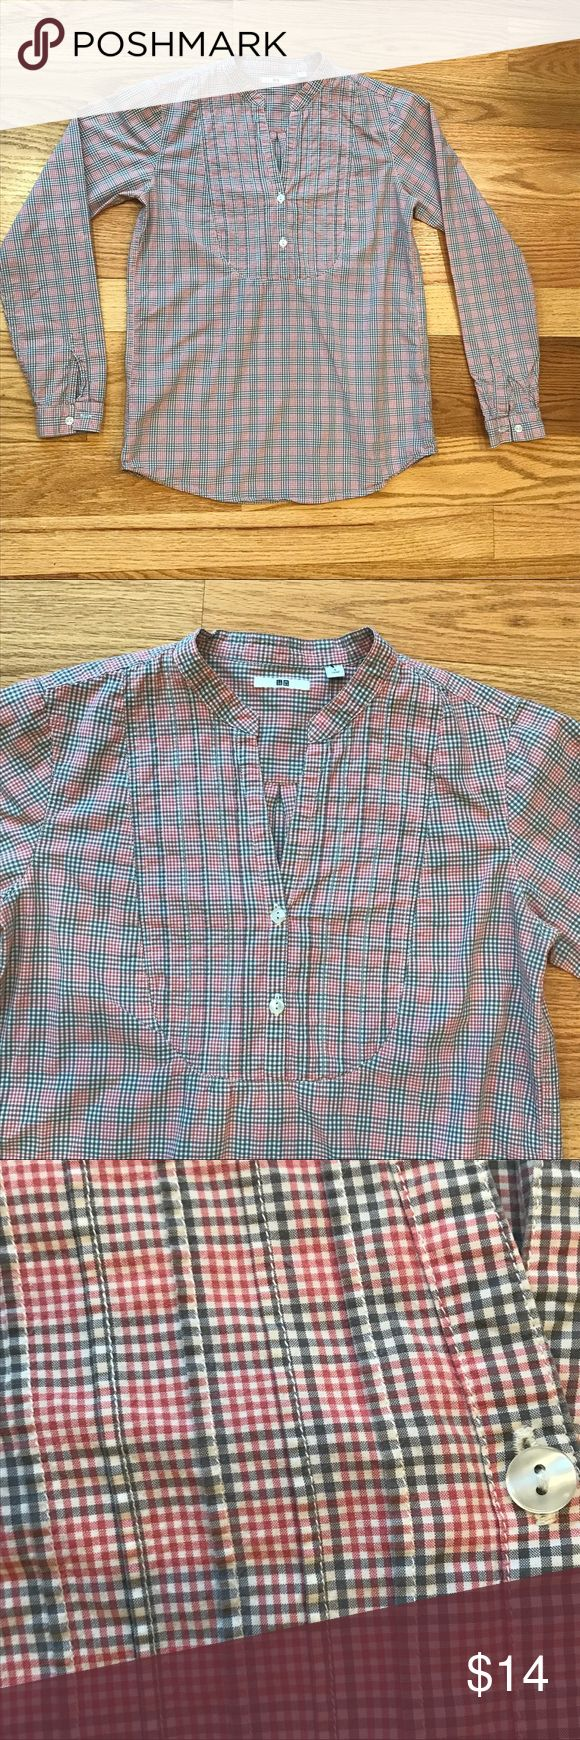 "Uniqlo Pink and Gray Plaid Popover Uniqlo plaid button front popover in pink and gray. Pleat front placket. Long sleeves. Band collar. Excellent condition. 100% cotton. Length 24"", armpit to armpit width 18"". Comment with any questions or make an offer. Bundle for discount. Uniqlo Tops Blouses"